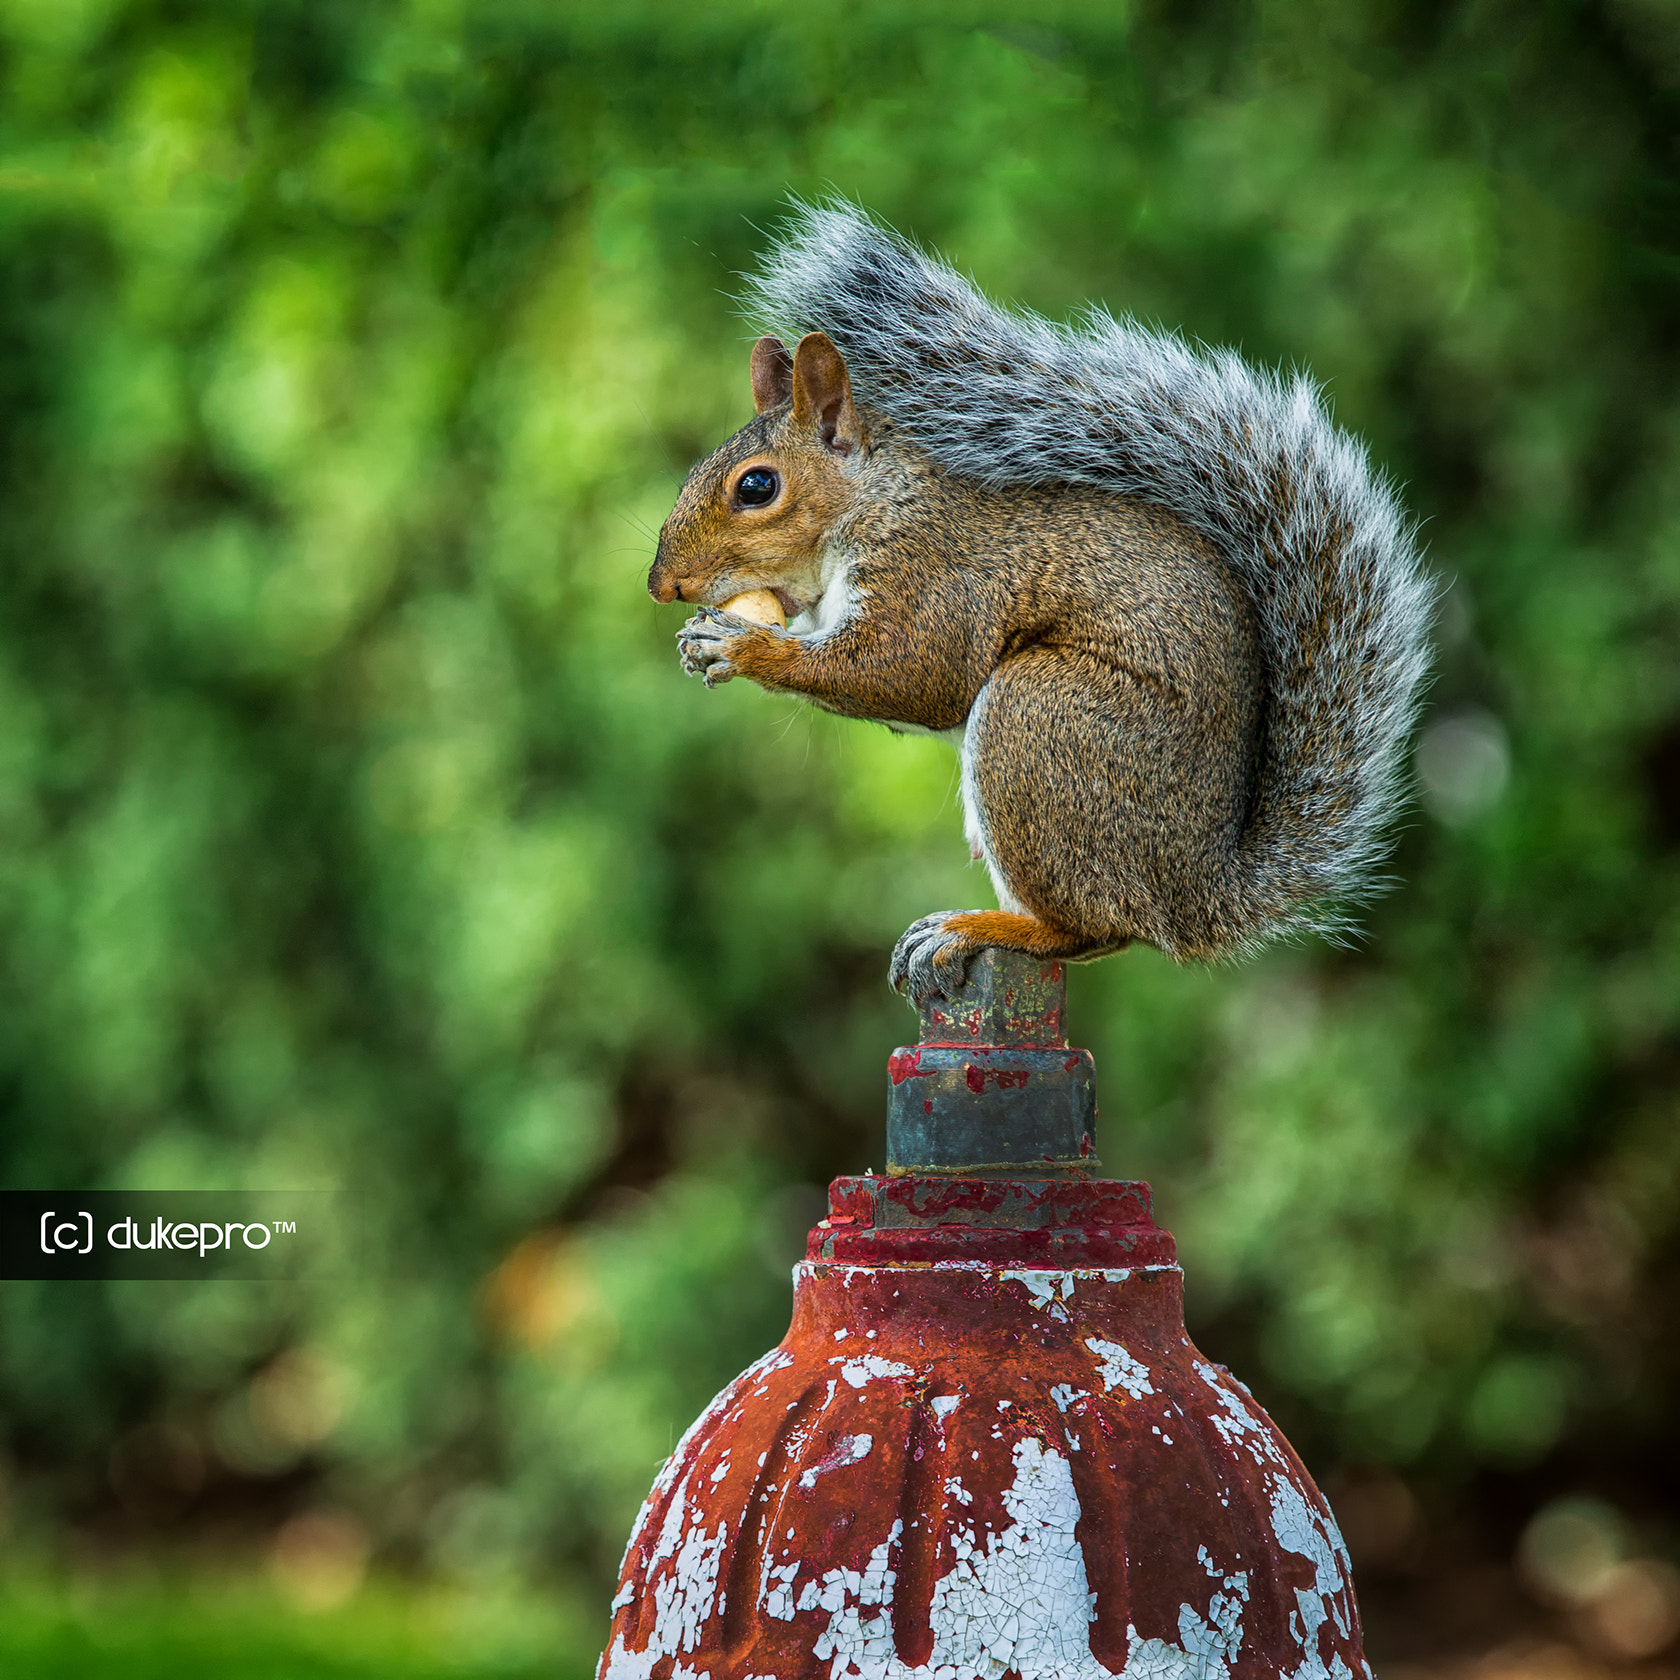 Photograph The Squirrel Is On The Fire Hydrant  by DukePro Studio on 500px